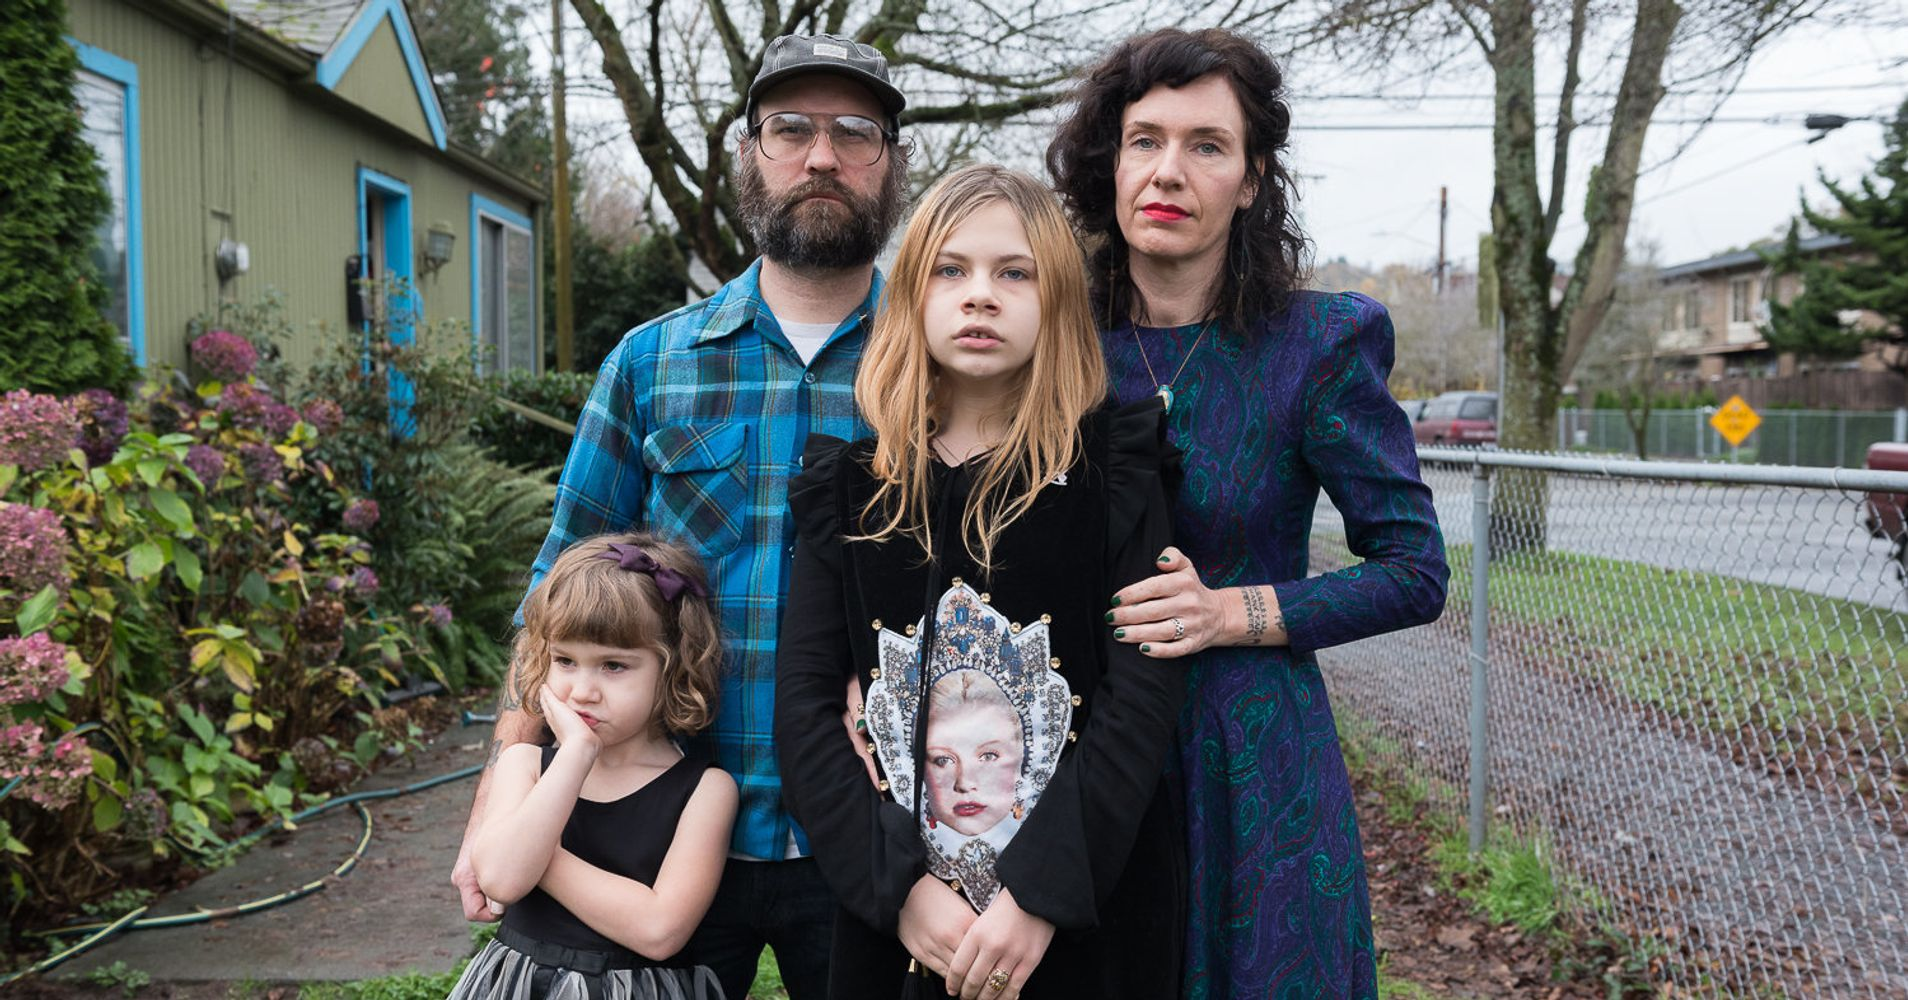 Unfiltered Photo Series Shows What 'Progressive Parenting' Looks ...